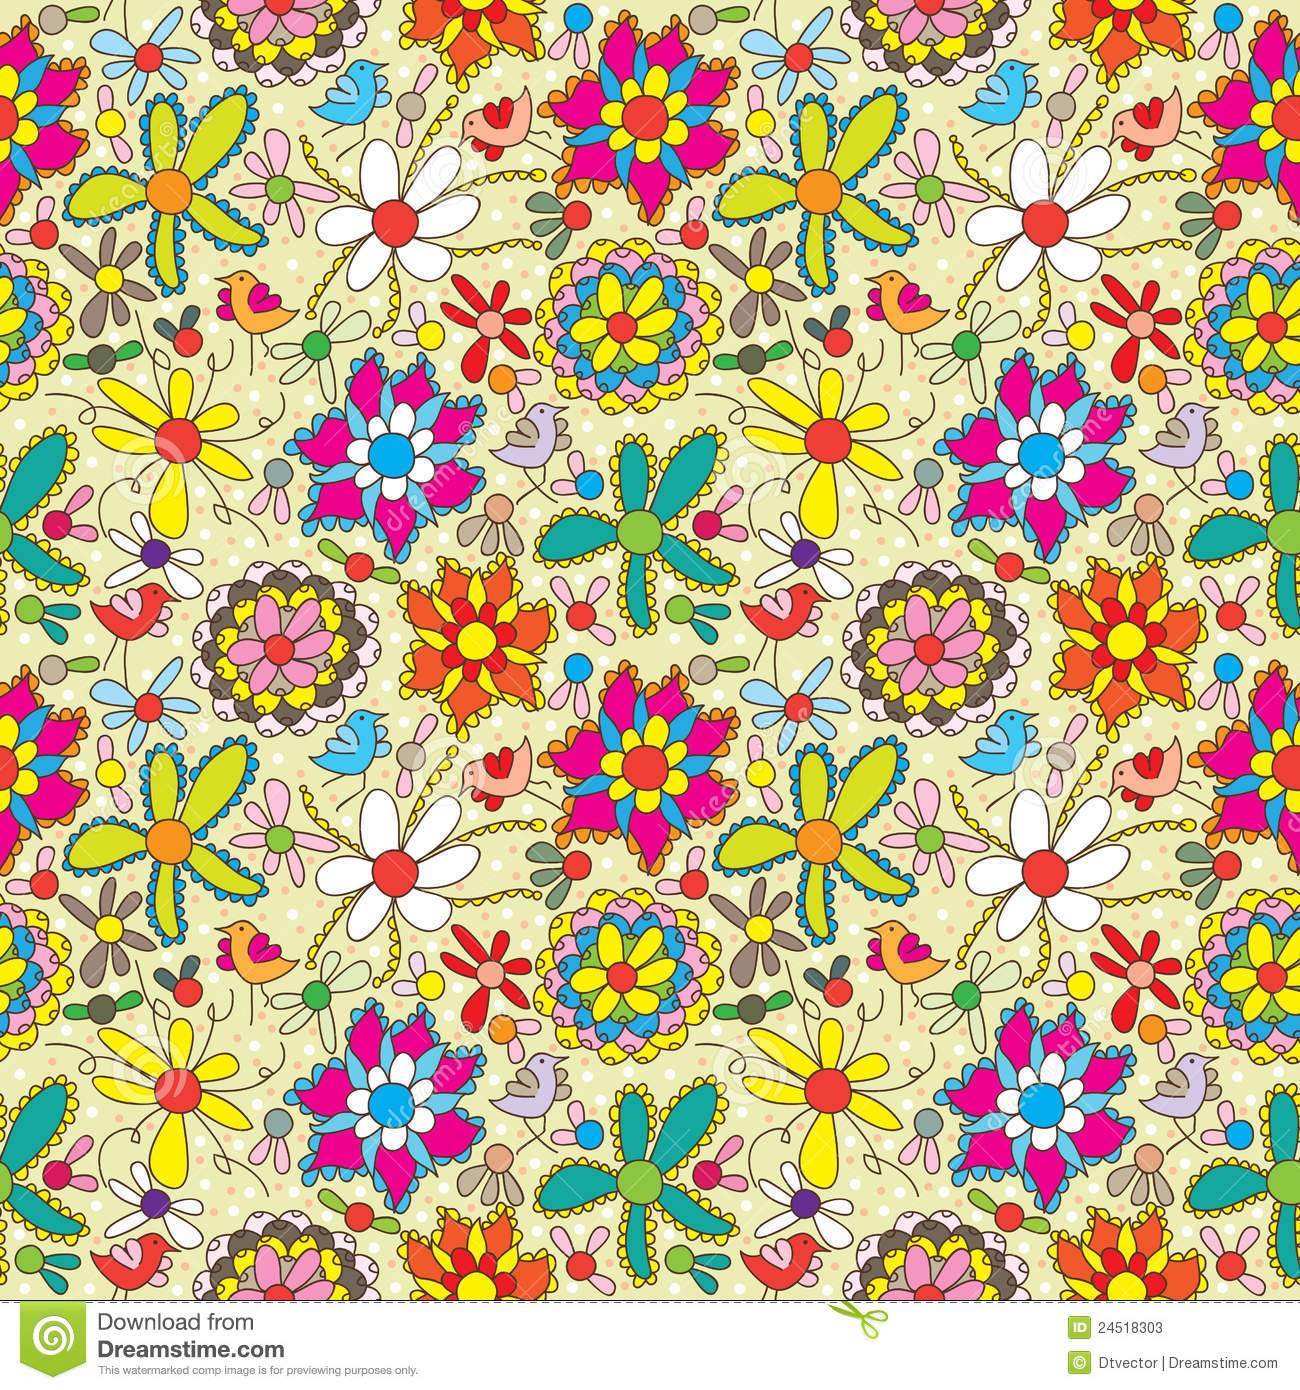 Cute Vintage Floral Wallpaper Flower Fill Colorful Seamless Pattern Eps Stock Photos